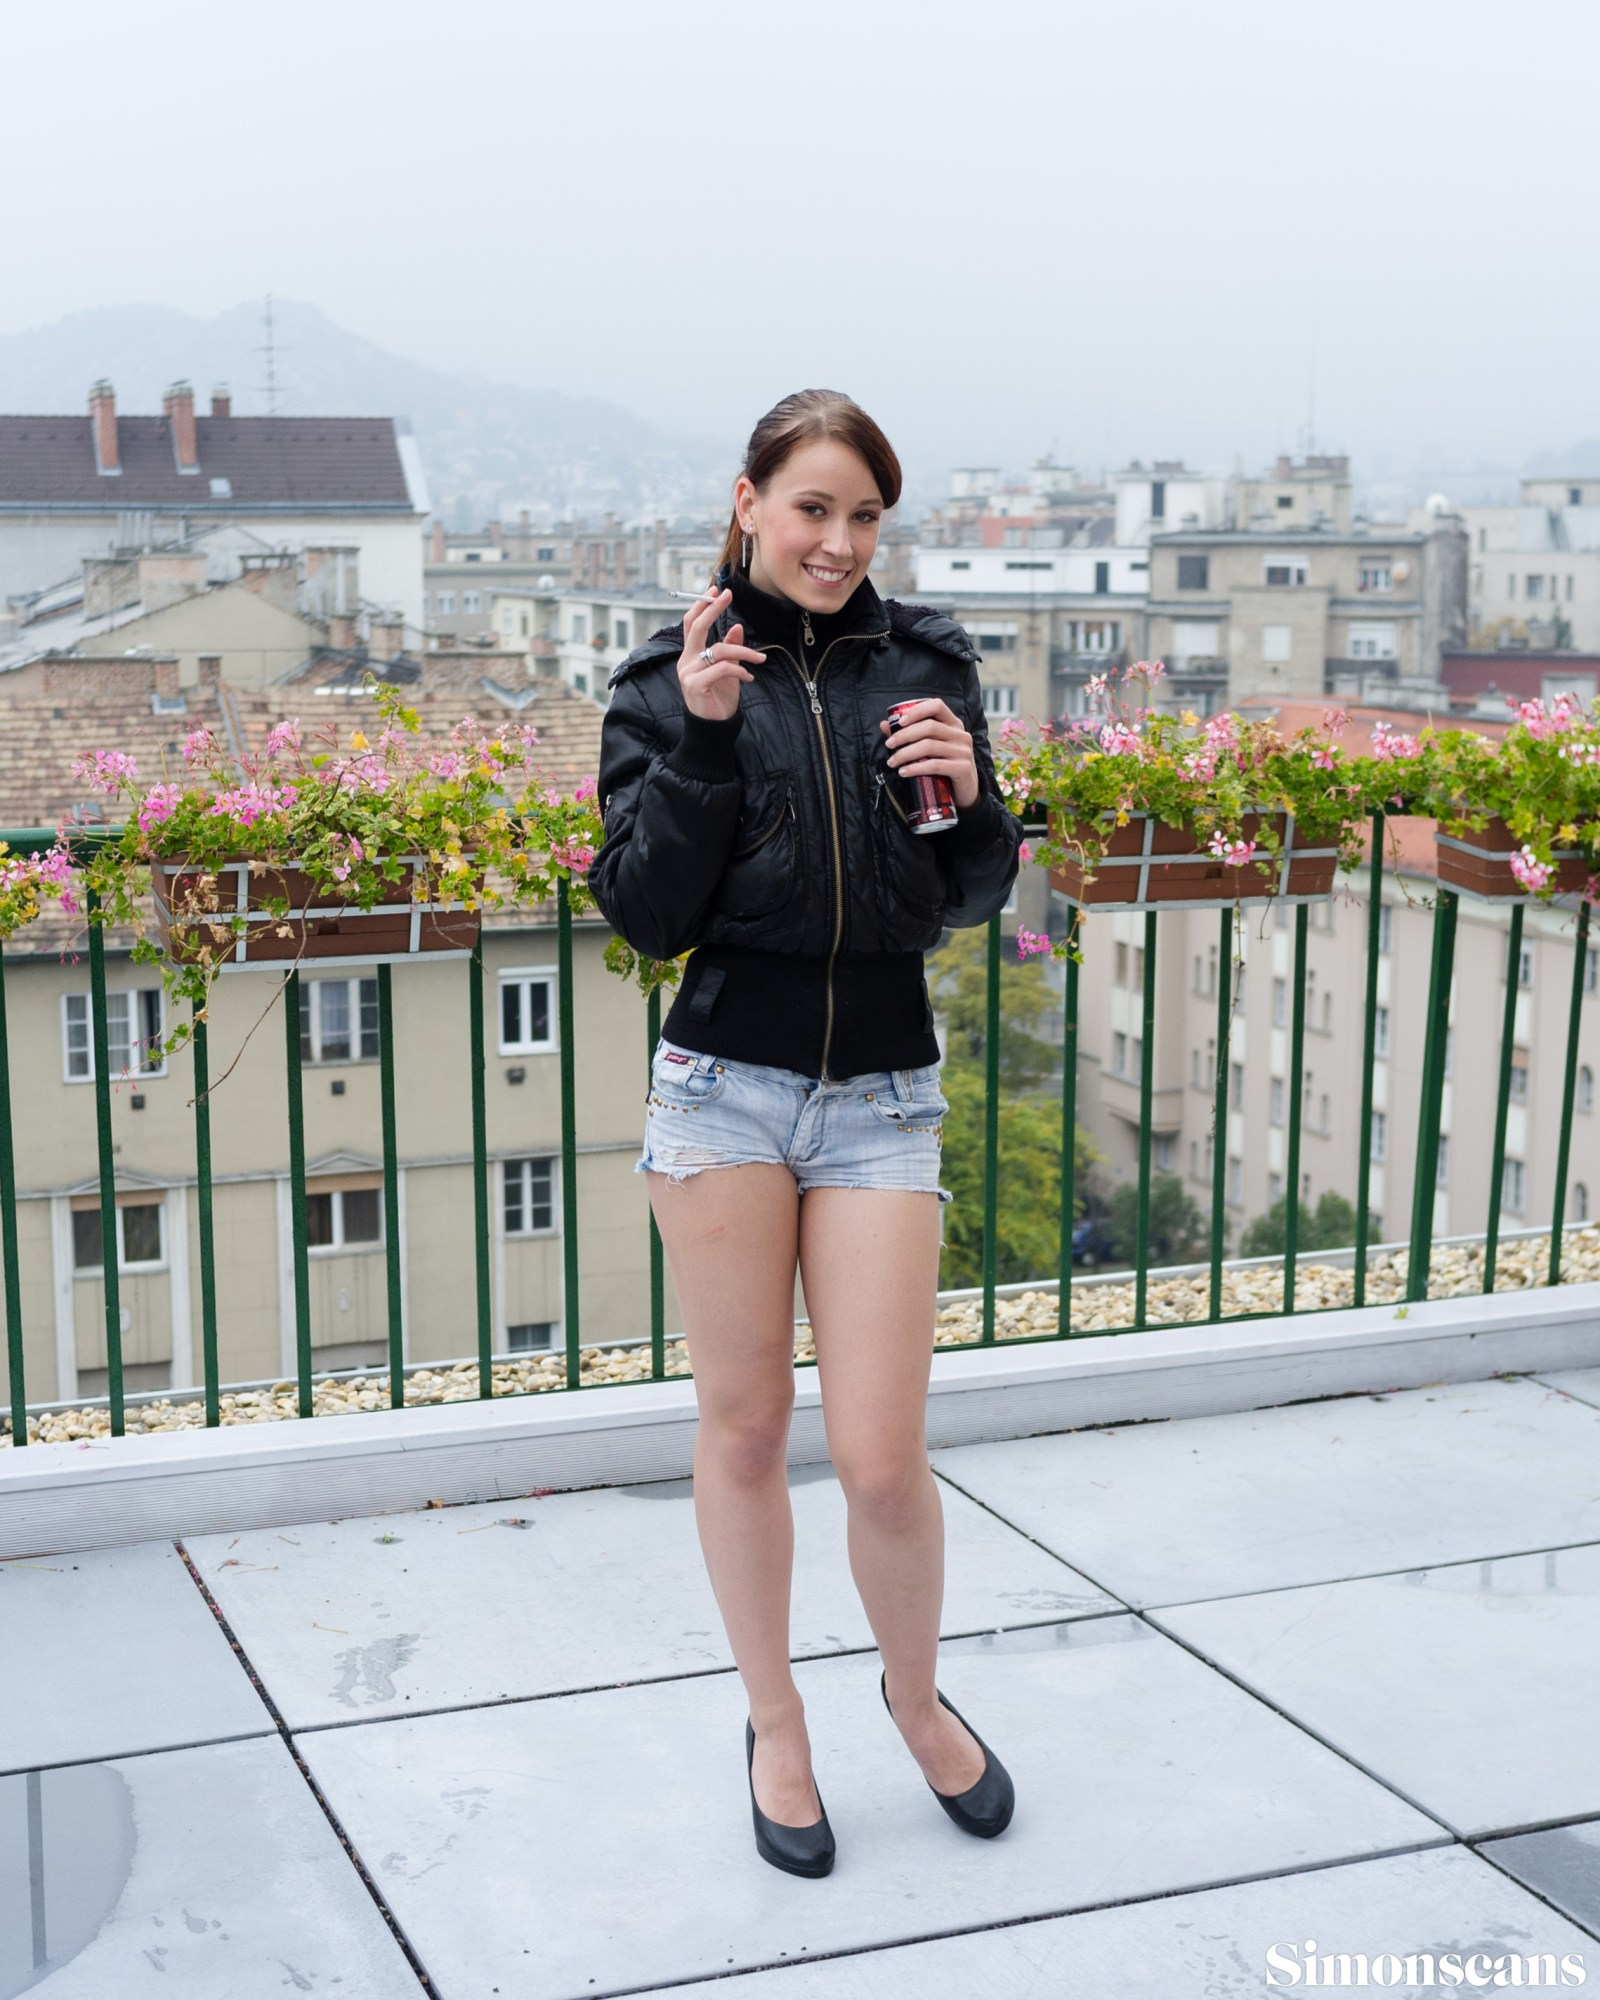 Minnie Manga on the rooftop with an energy drink